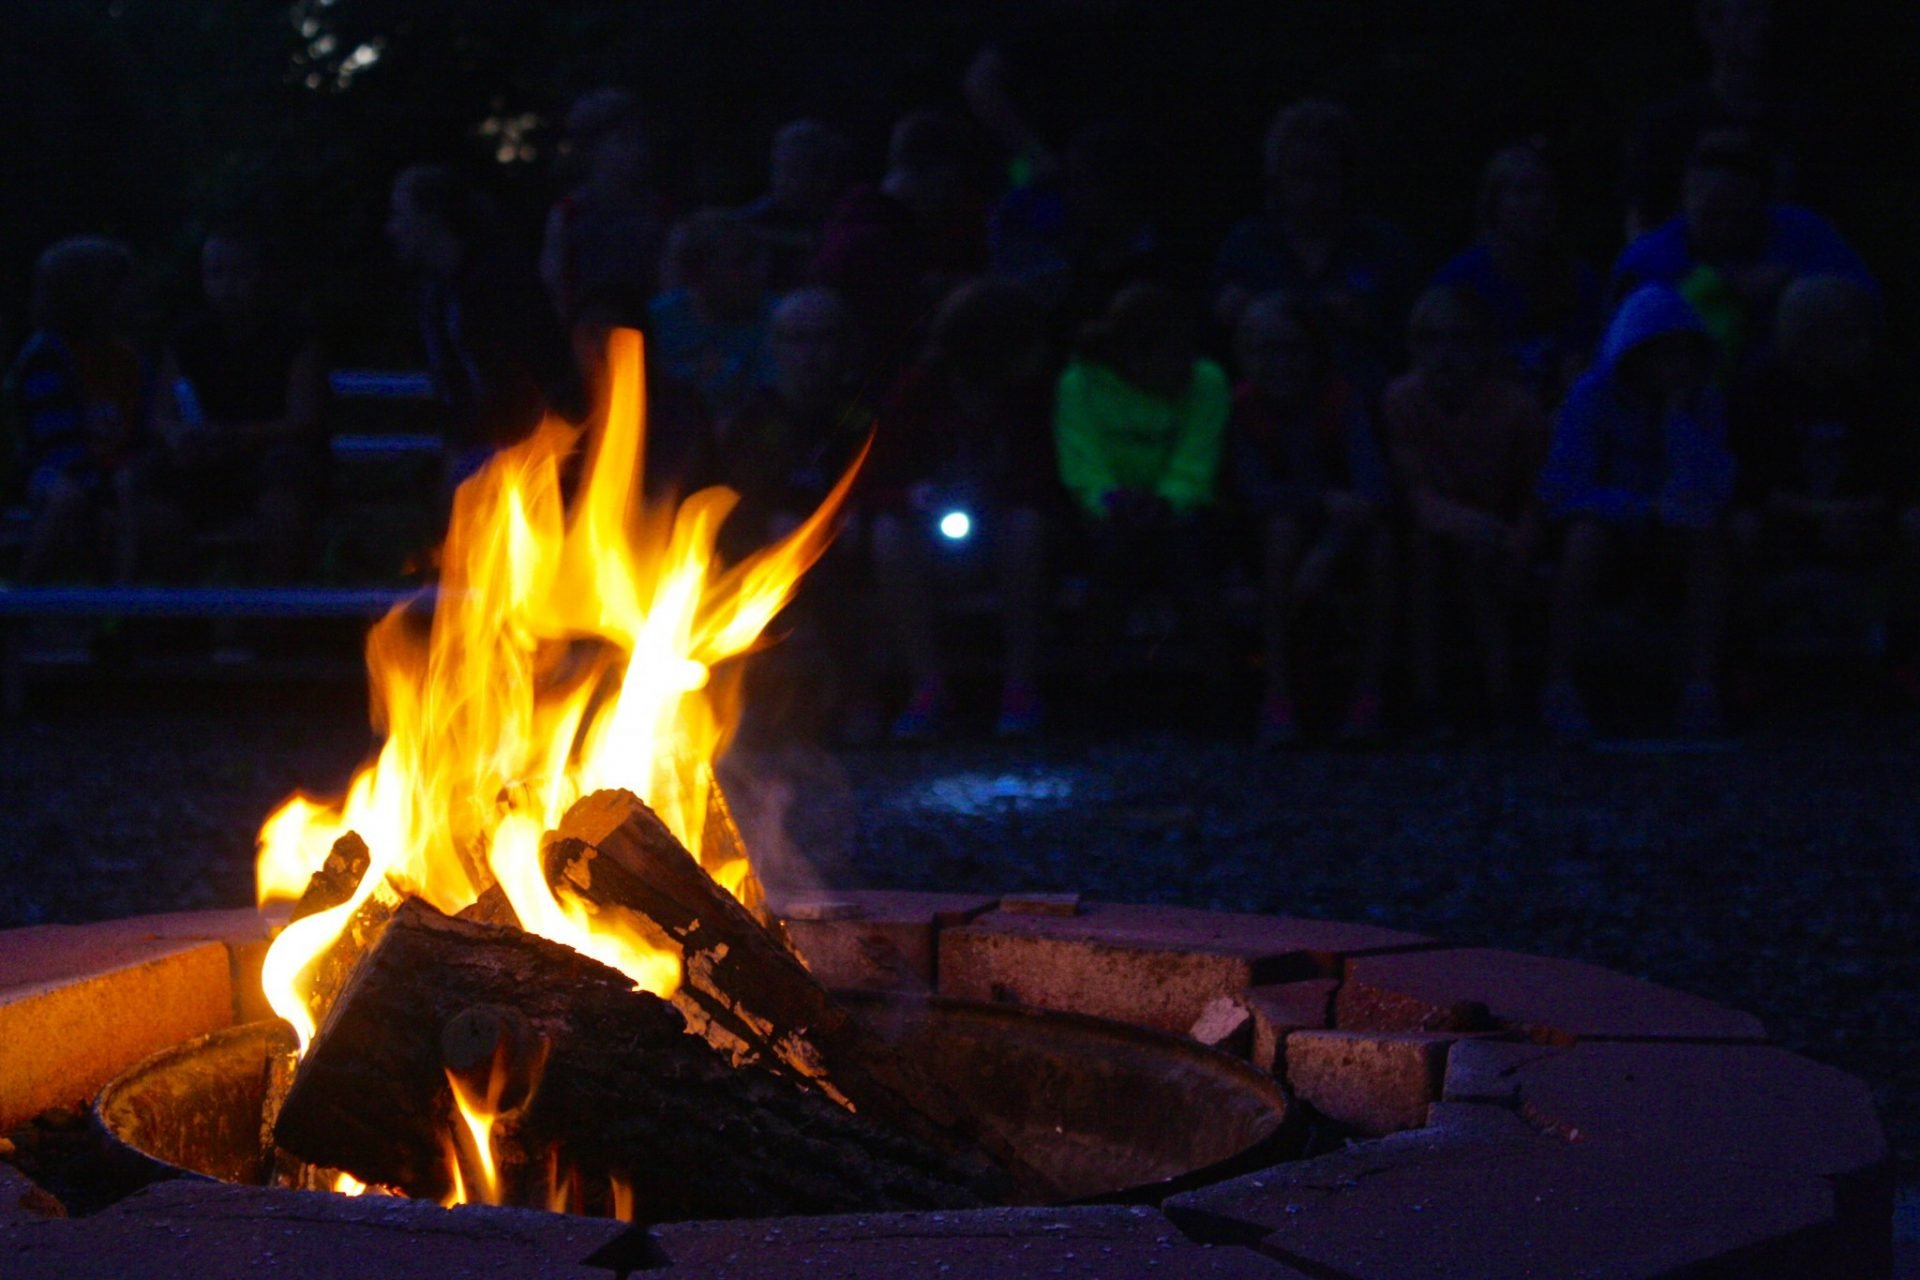 Ebenezer campfire at night with group on benches